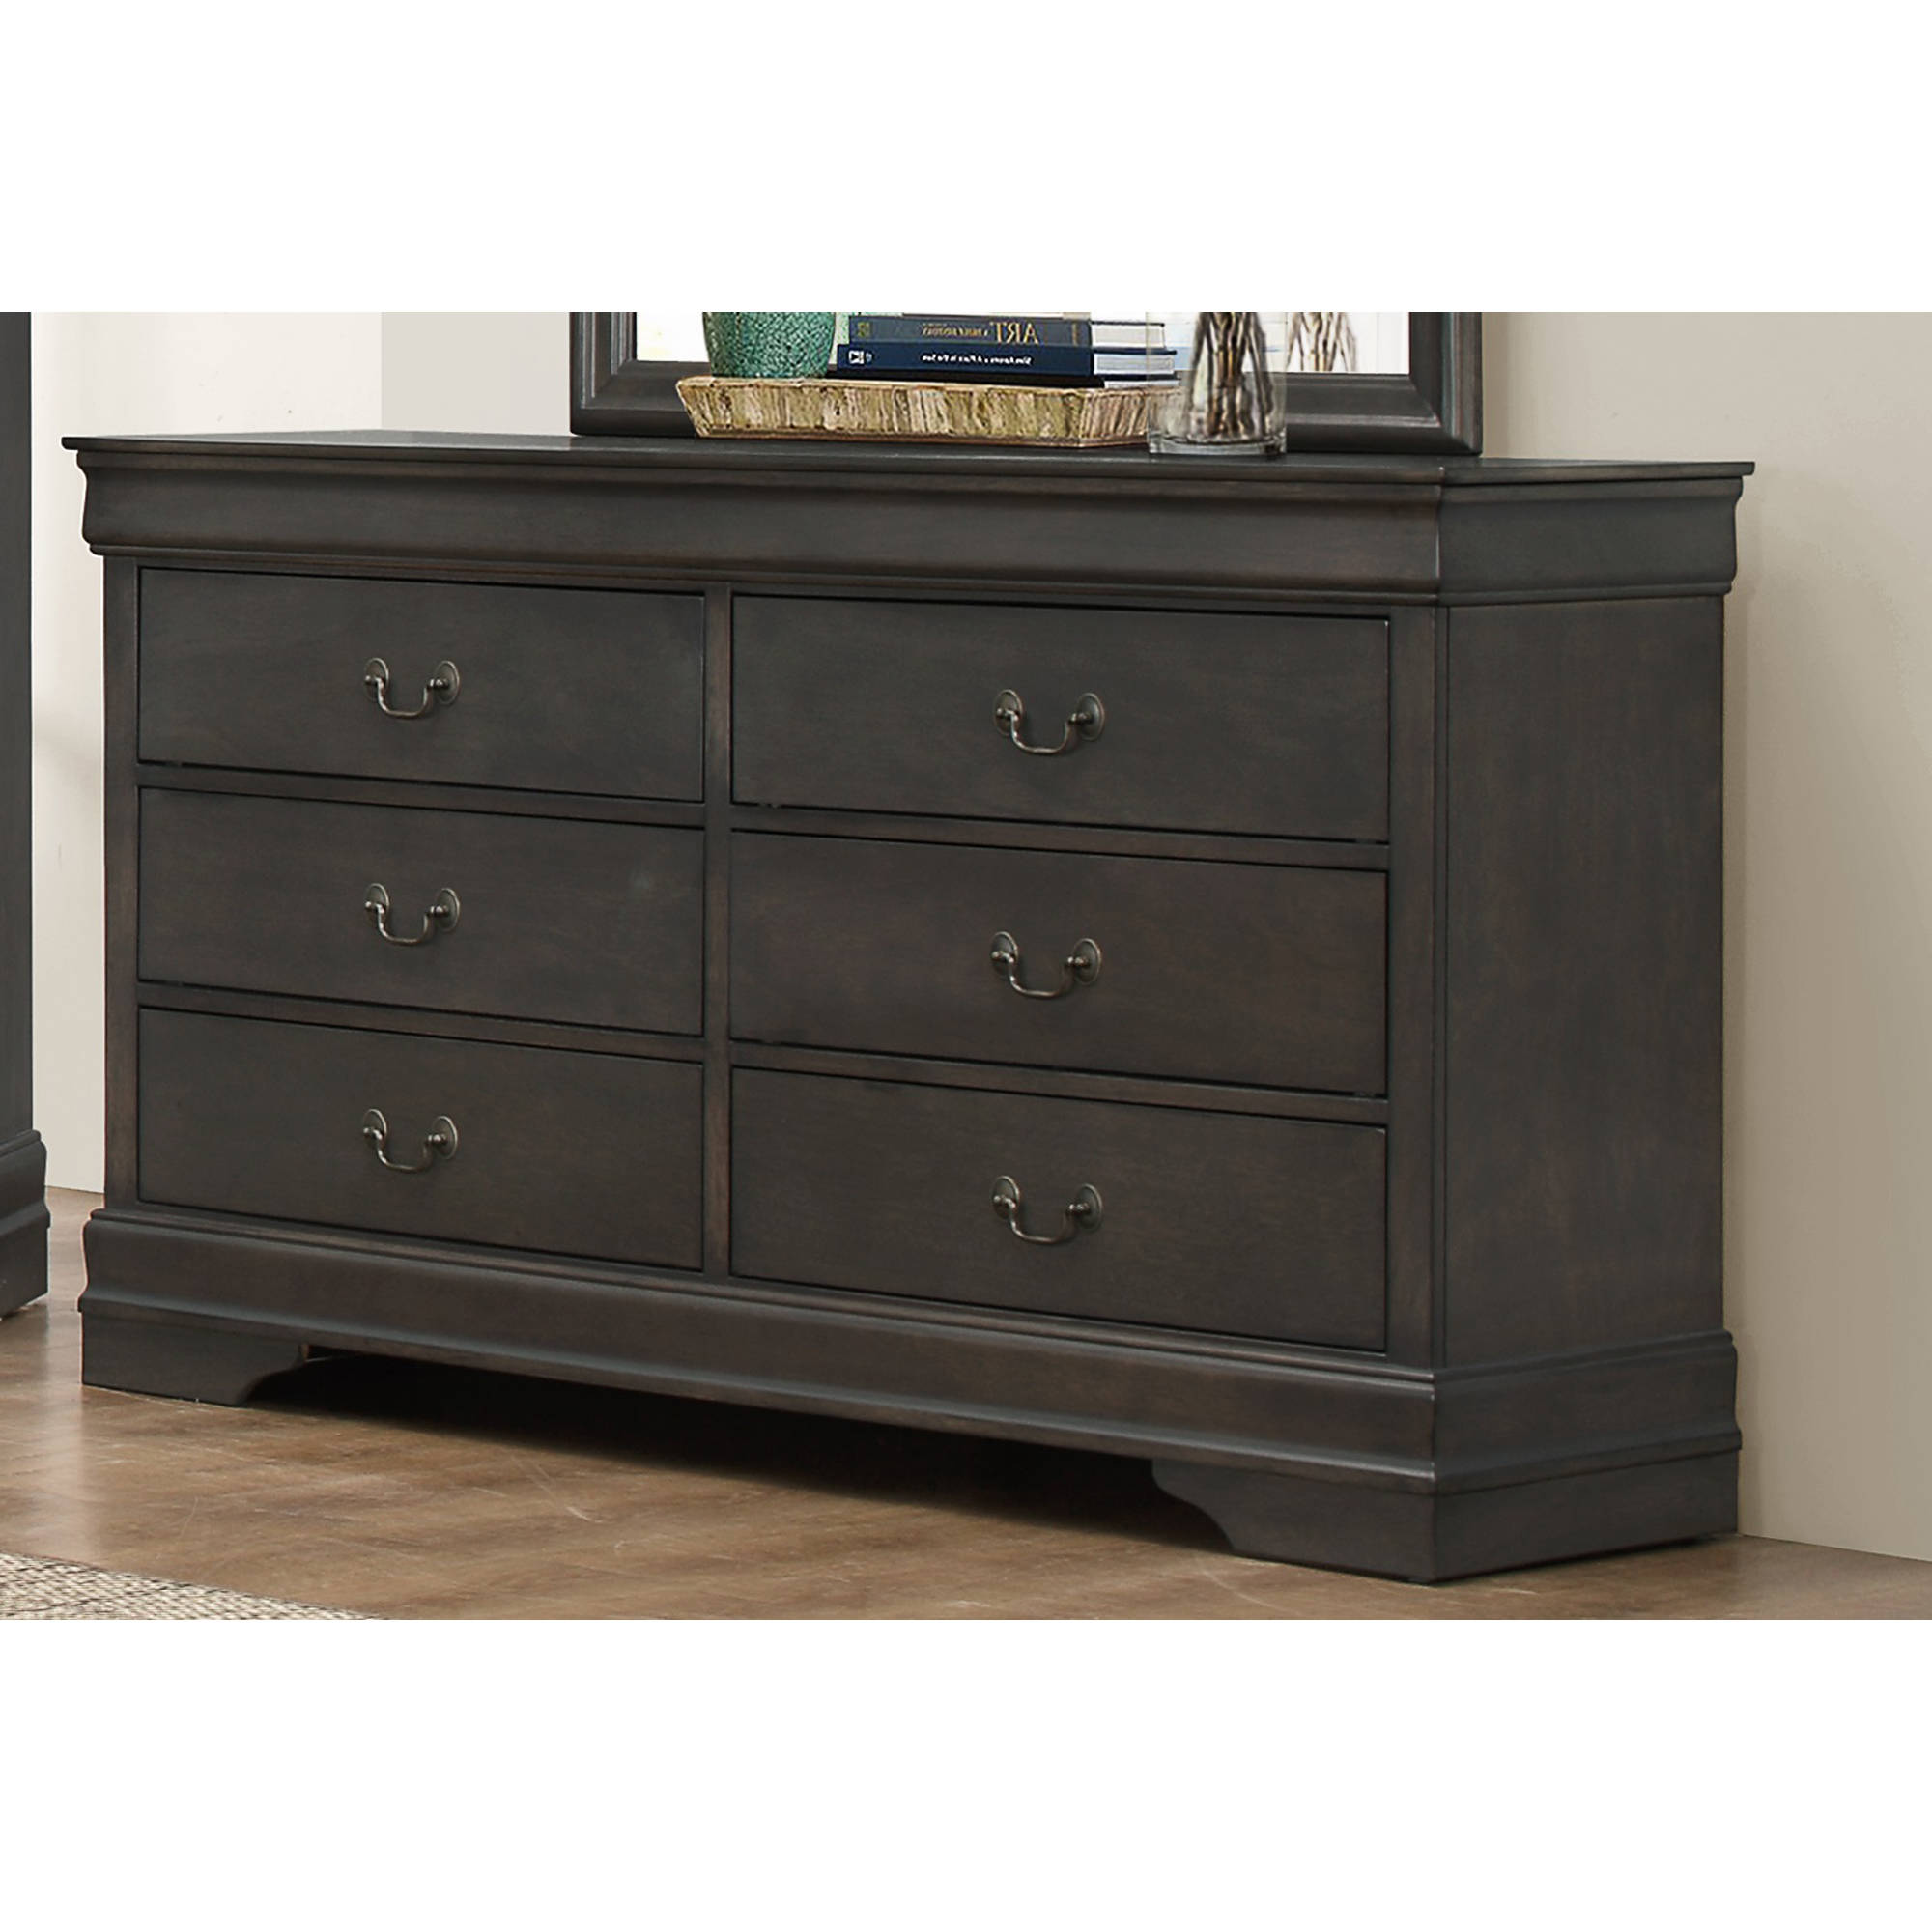 Weston Home Dresser, Stained Grey